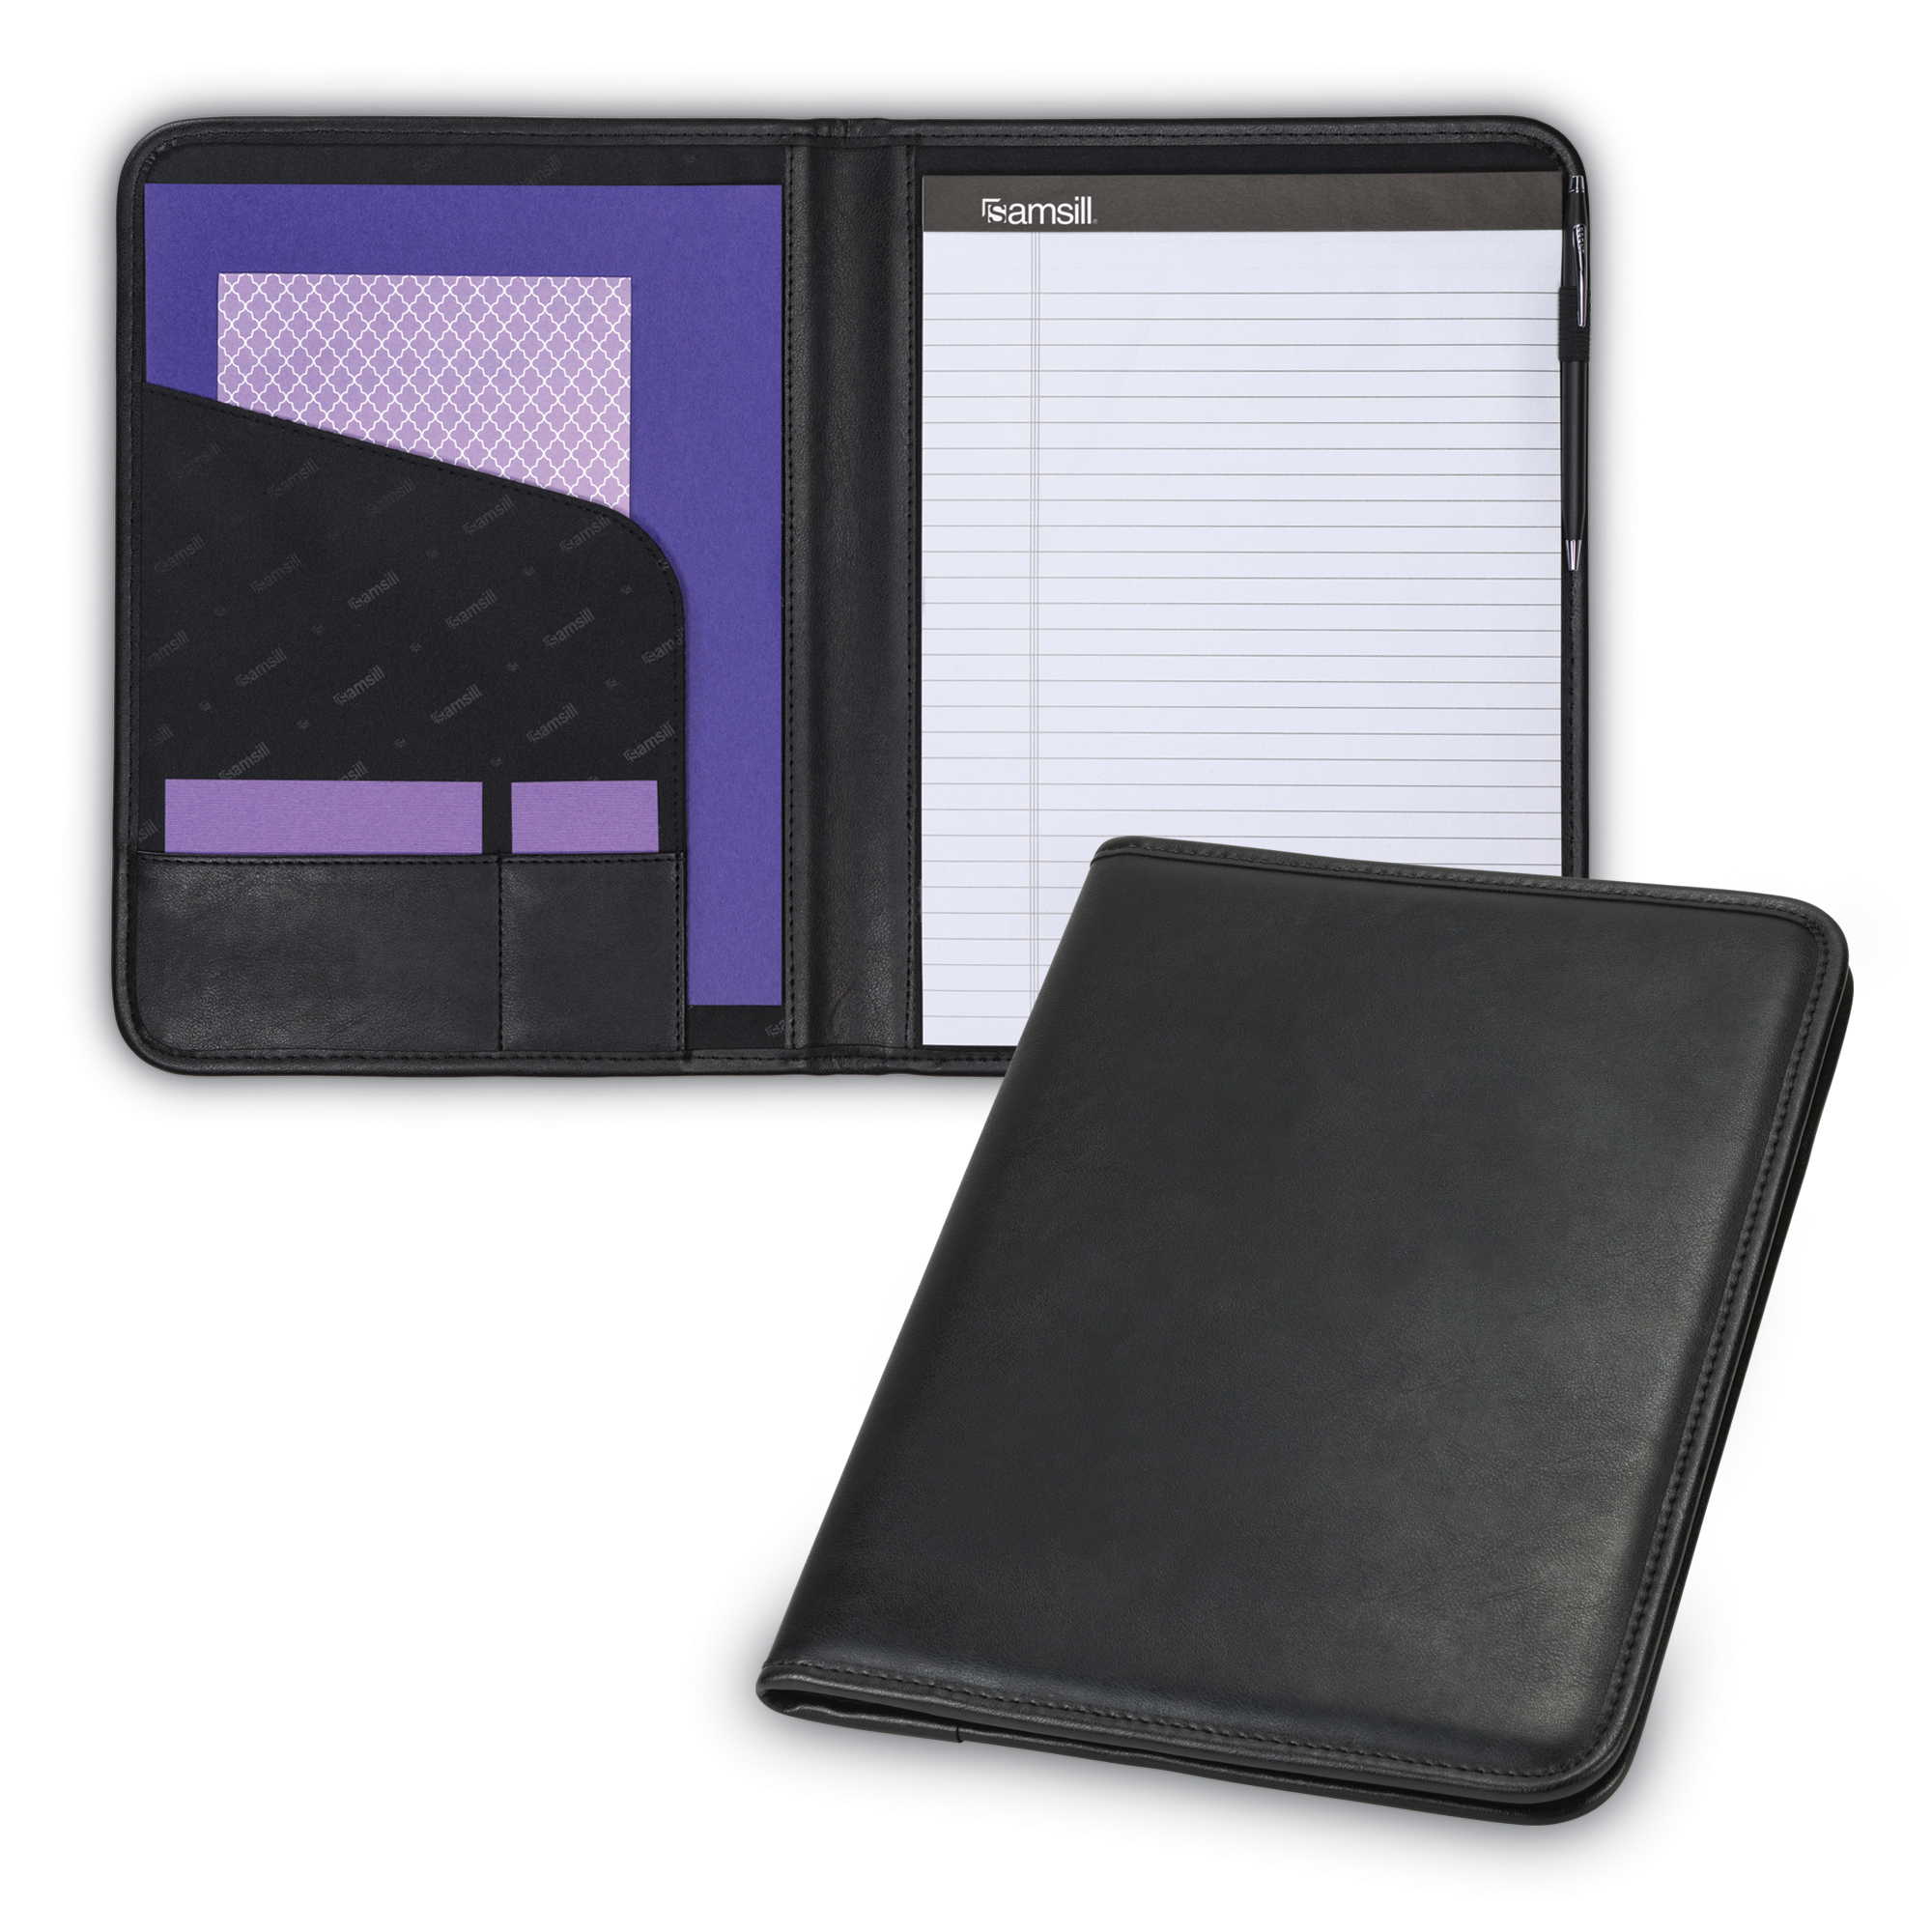 "Samsill Professional Padfolio, 8.5""x11"" Writing Pad Included, Black"